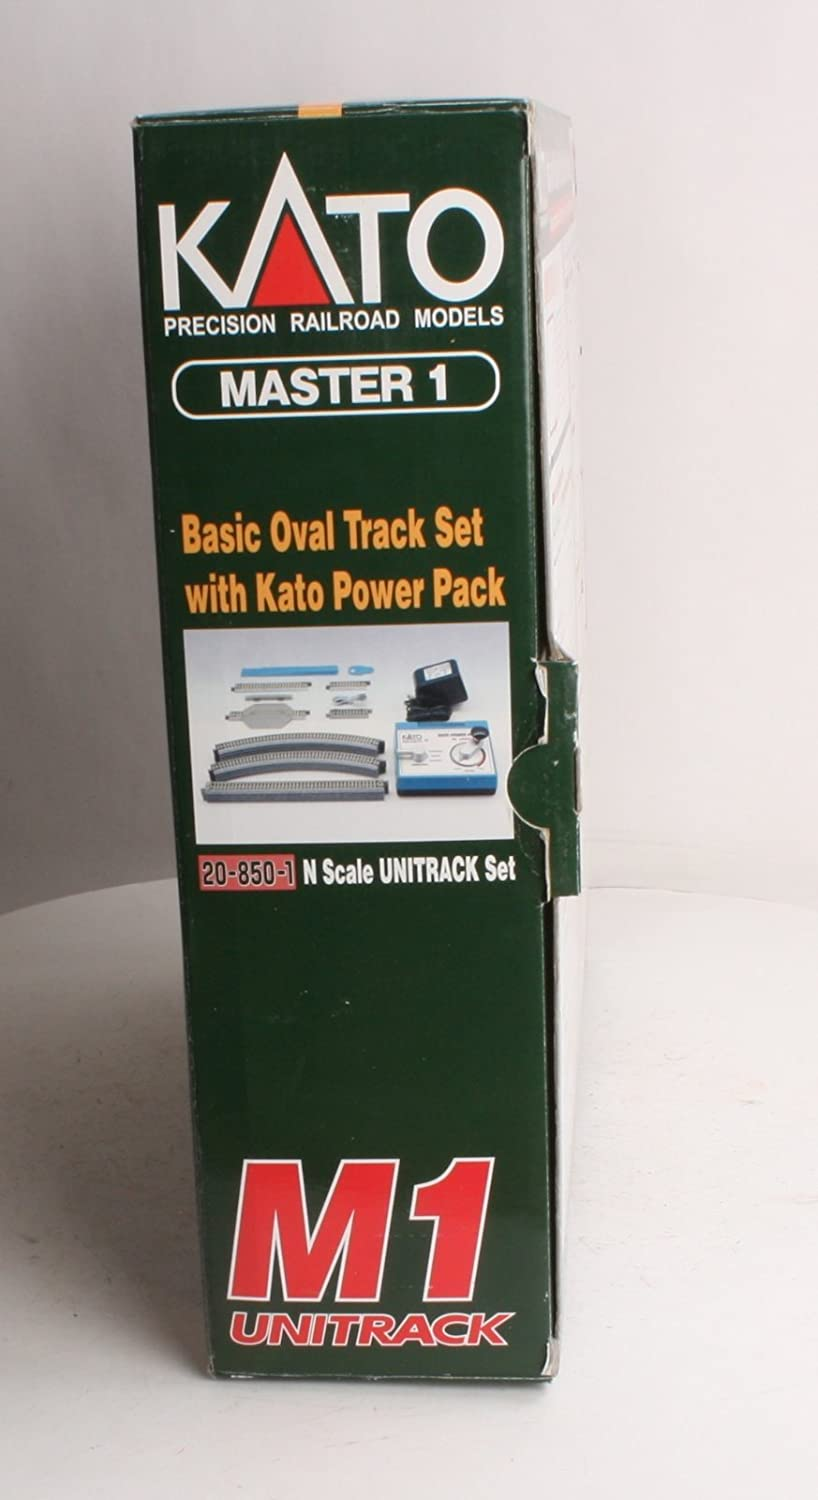 Kato USA Model Train Products M1 UNITRACK Basic Oval with Kato Power Pack Kato Trains 20-850-1